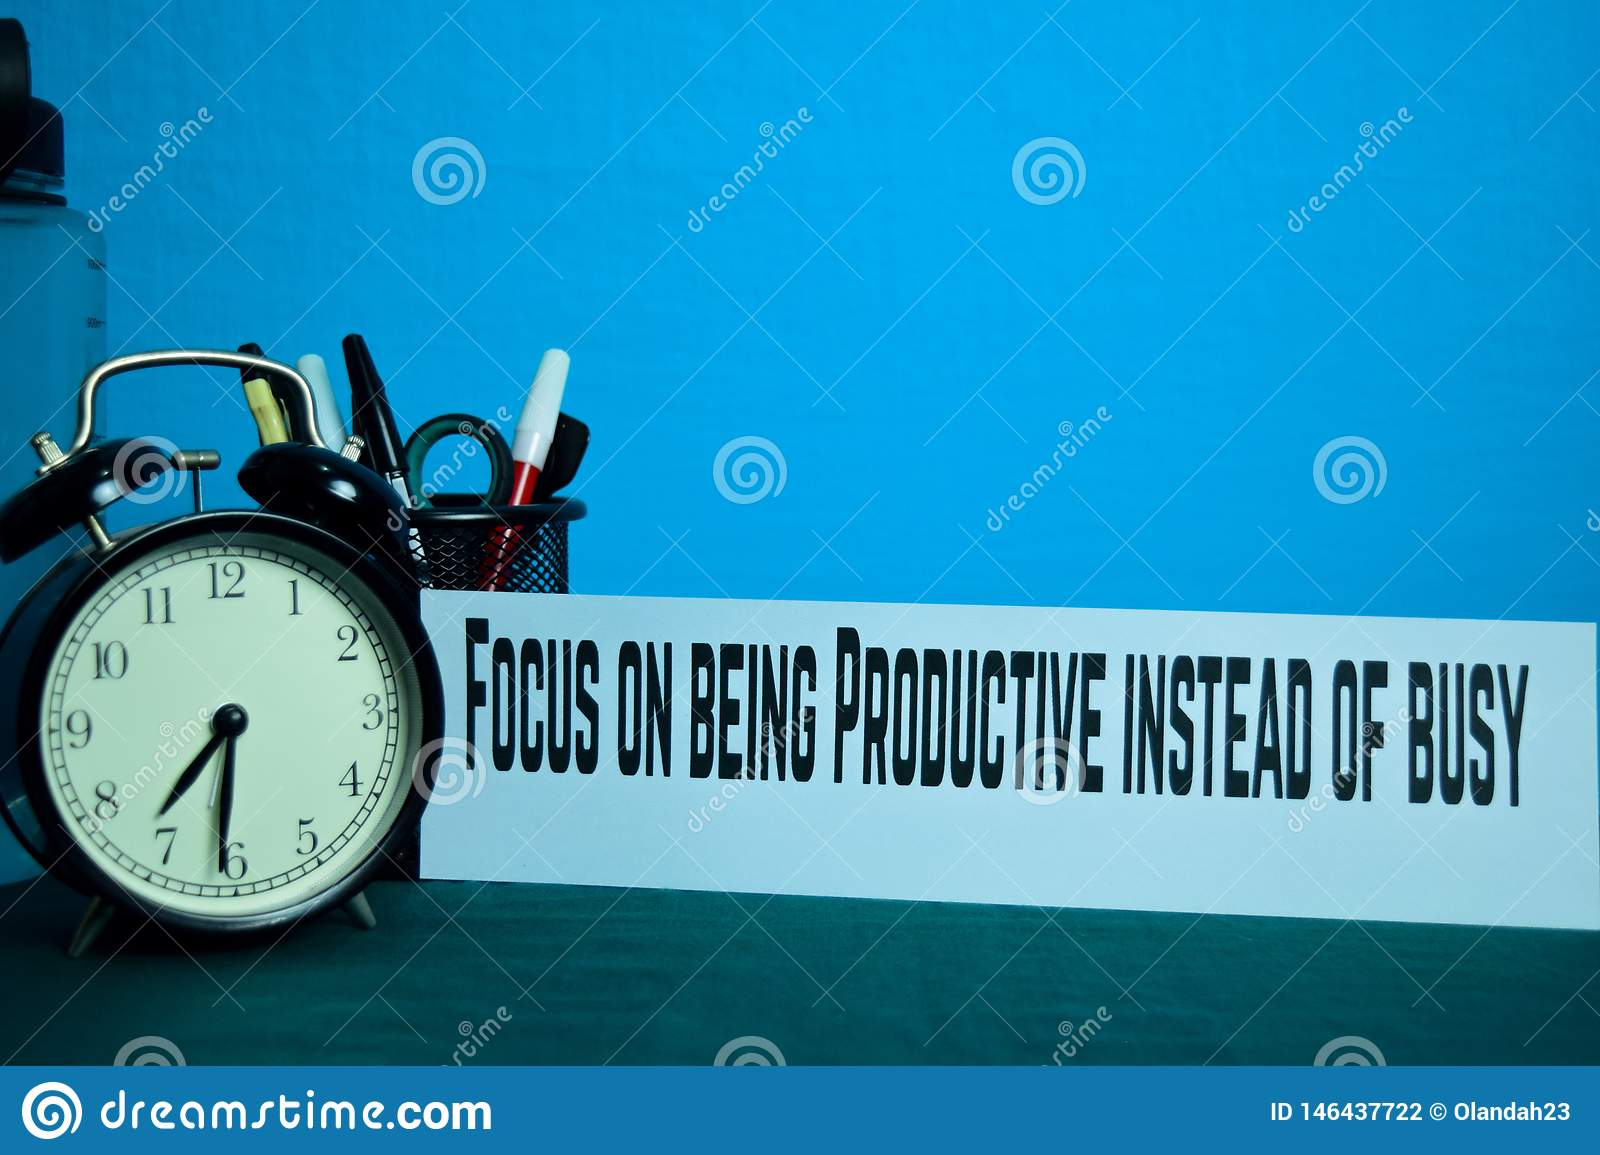 Focus on being Productive instead of busy Planning on Background of Working Table with Office Supplies.